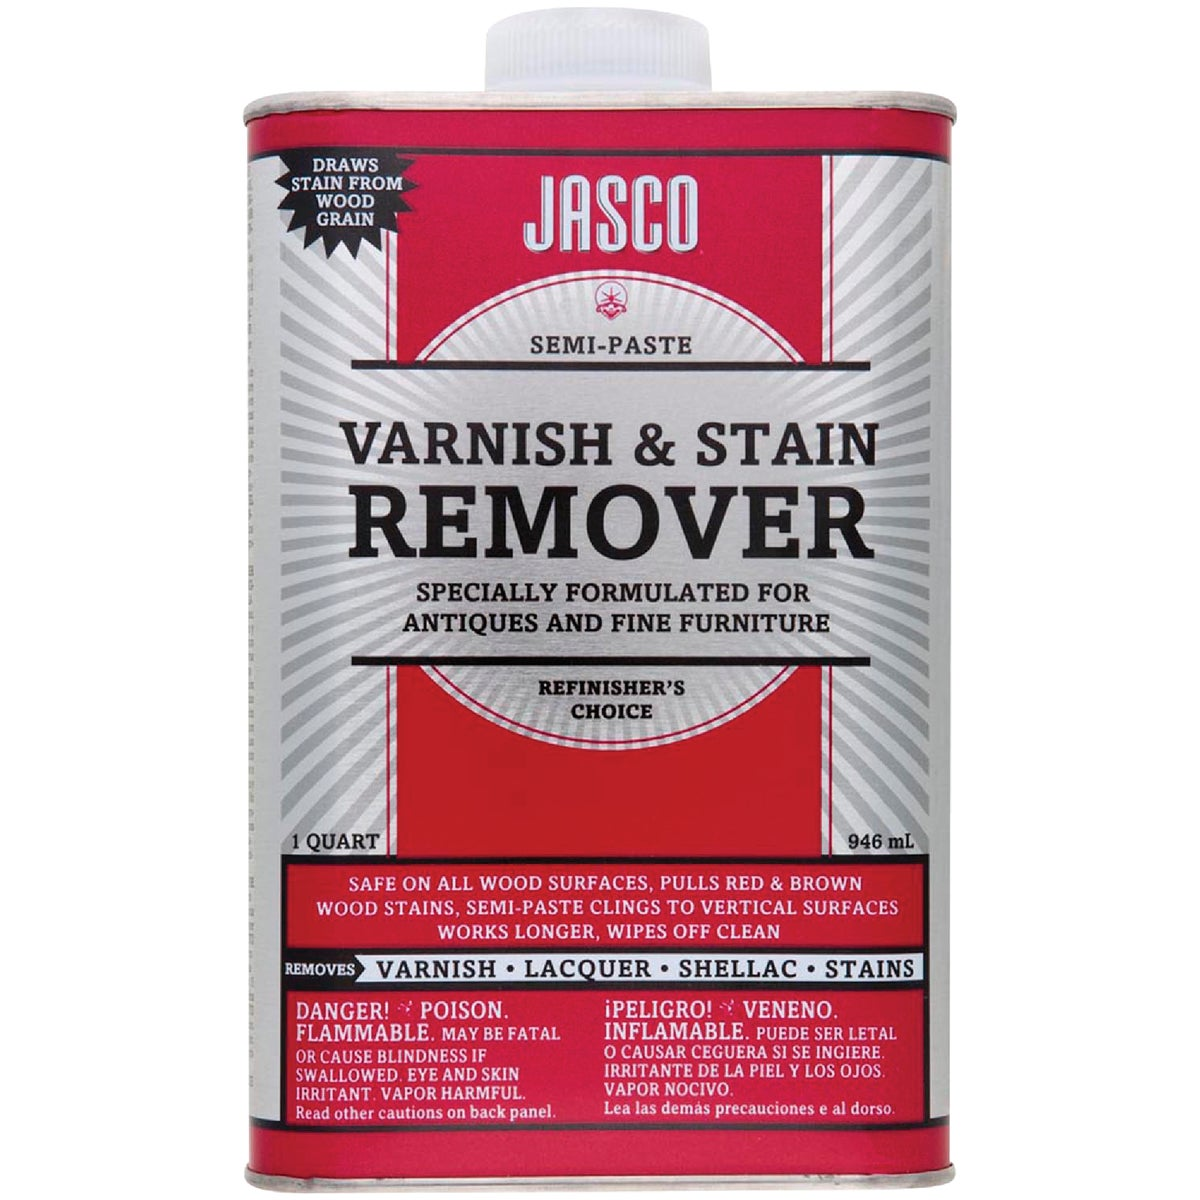 VARNISH & STAIN REMOVER - QJBV00102 by Wm Barr